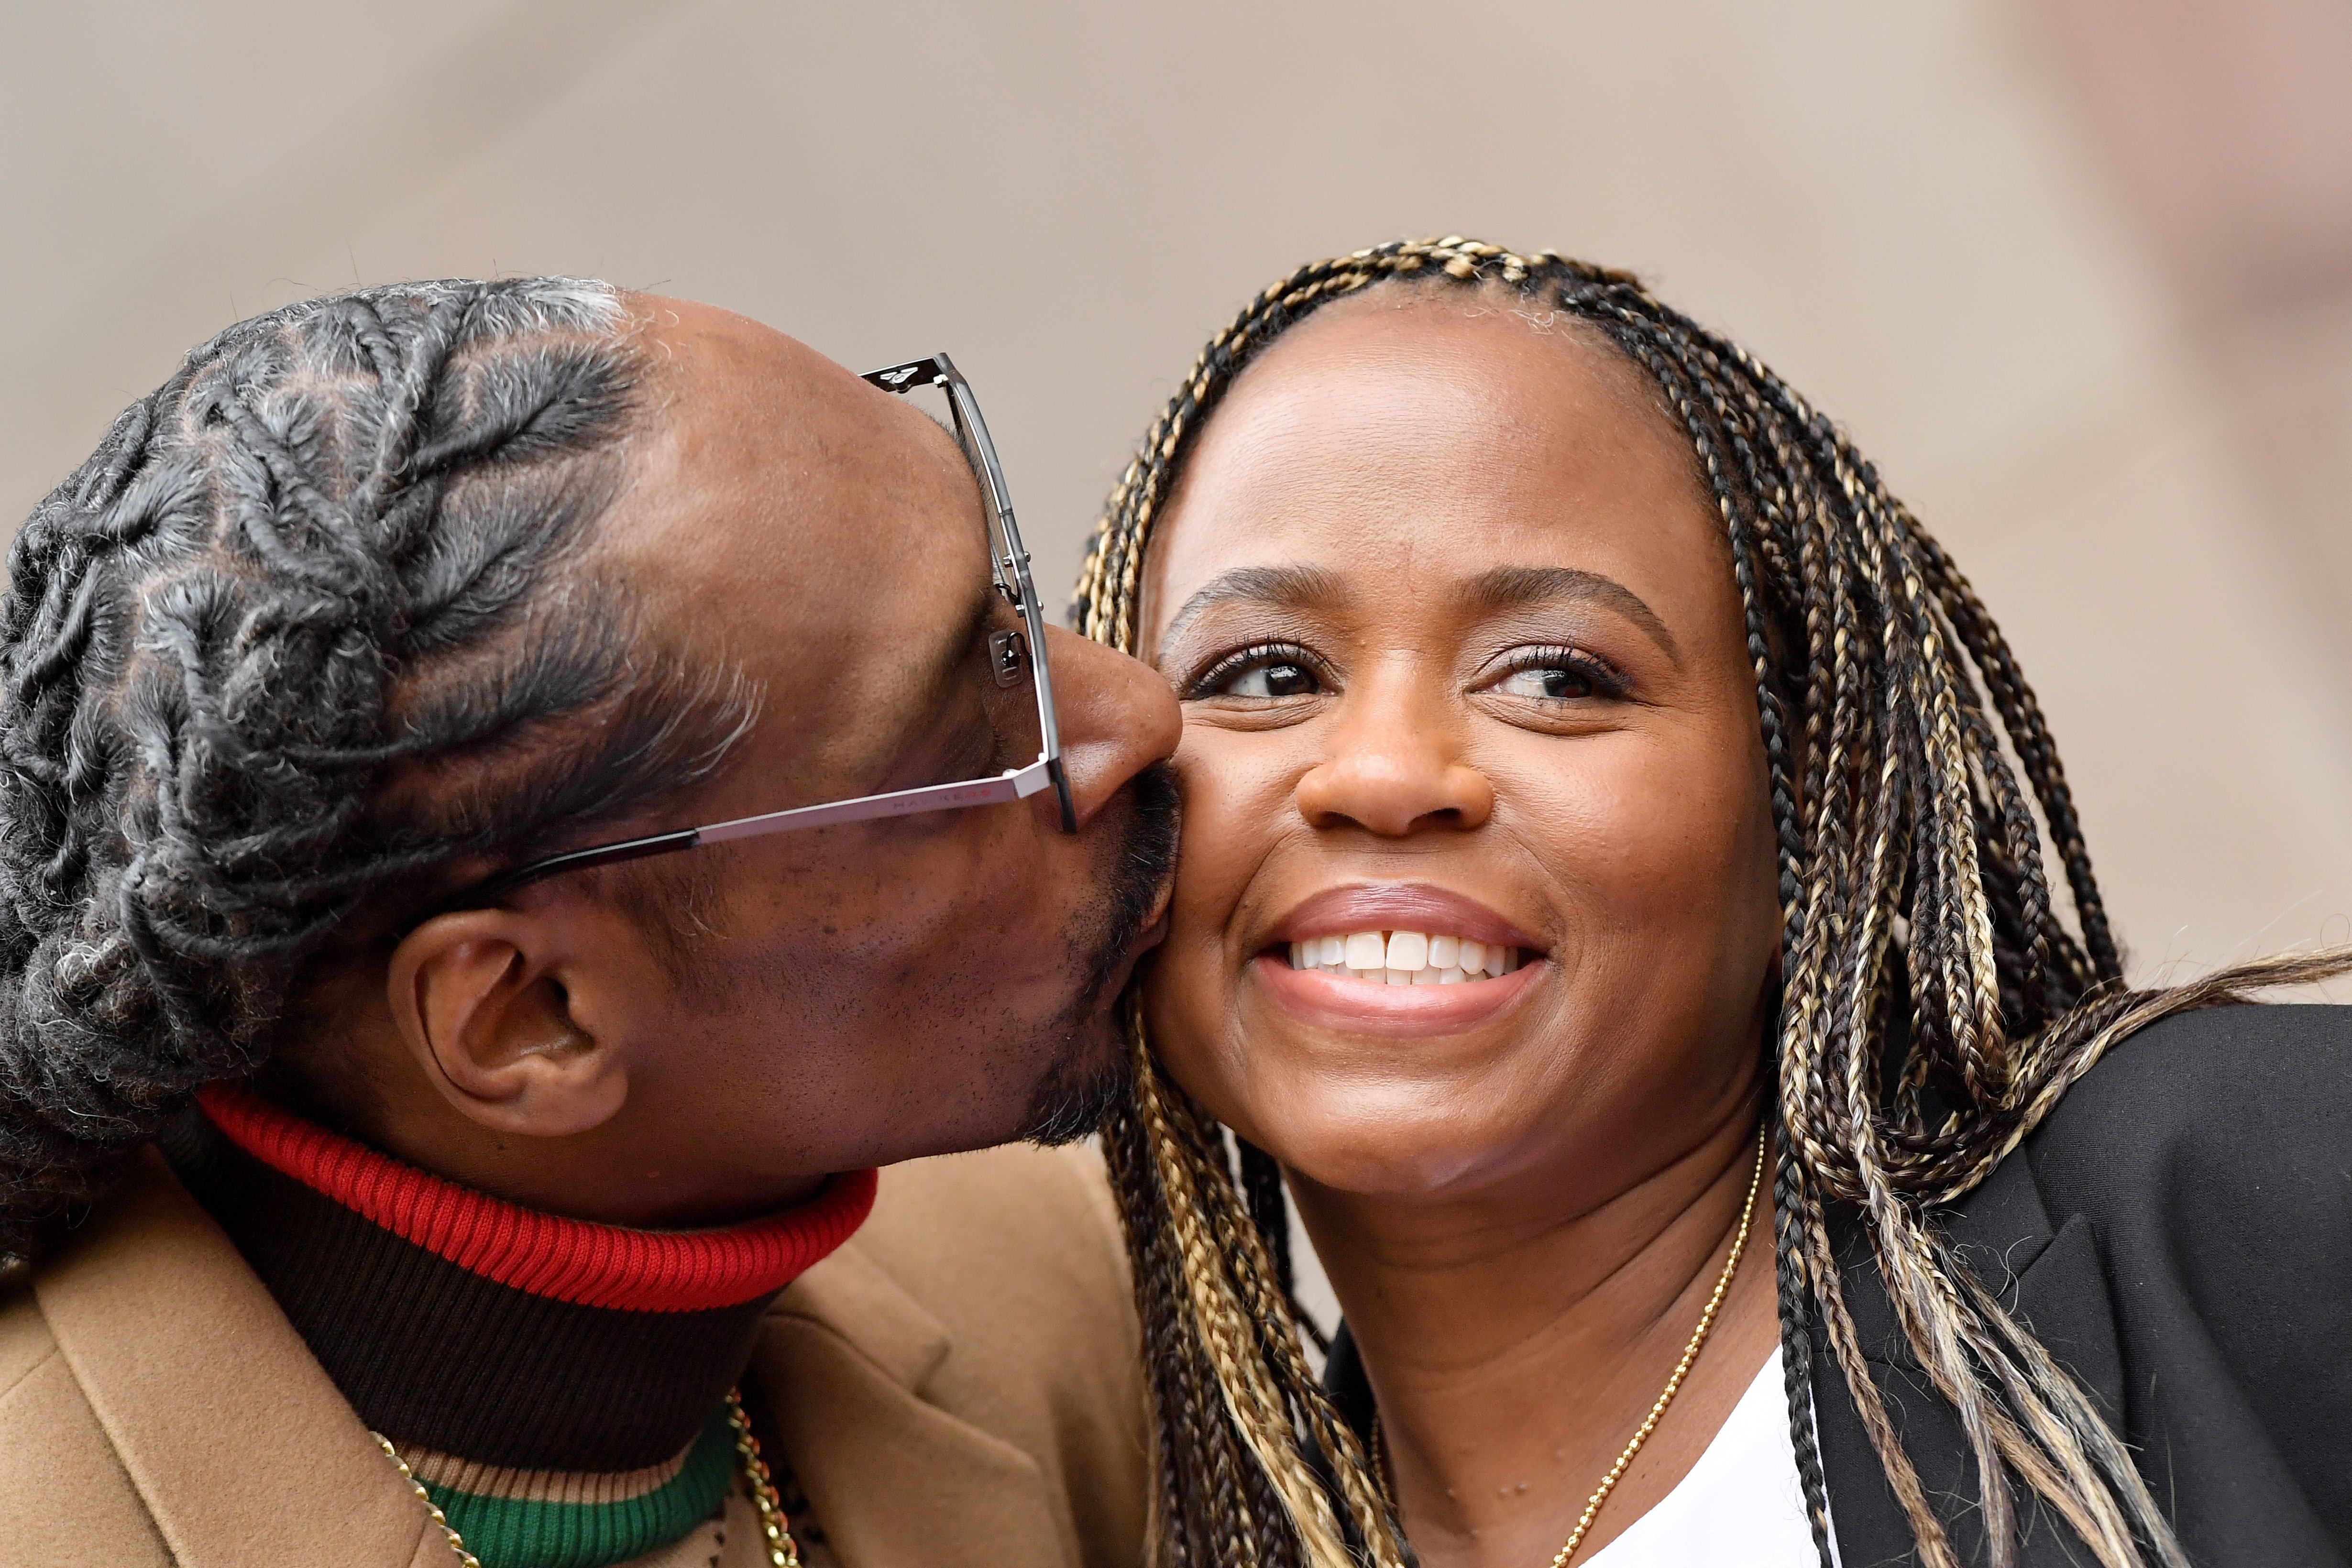 Snoop Dogg and Shante Broadus at the ceremony honoring Snoop Dogg with a star on the Hollywood Walk of Fame on November 19, 2018 in Hollywood, California.   Source: Getty Images